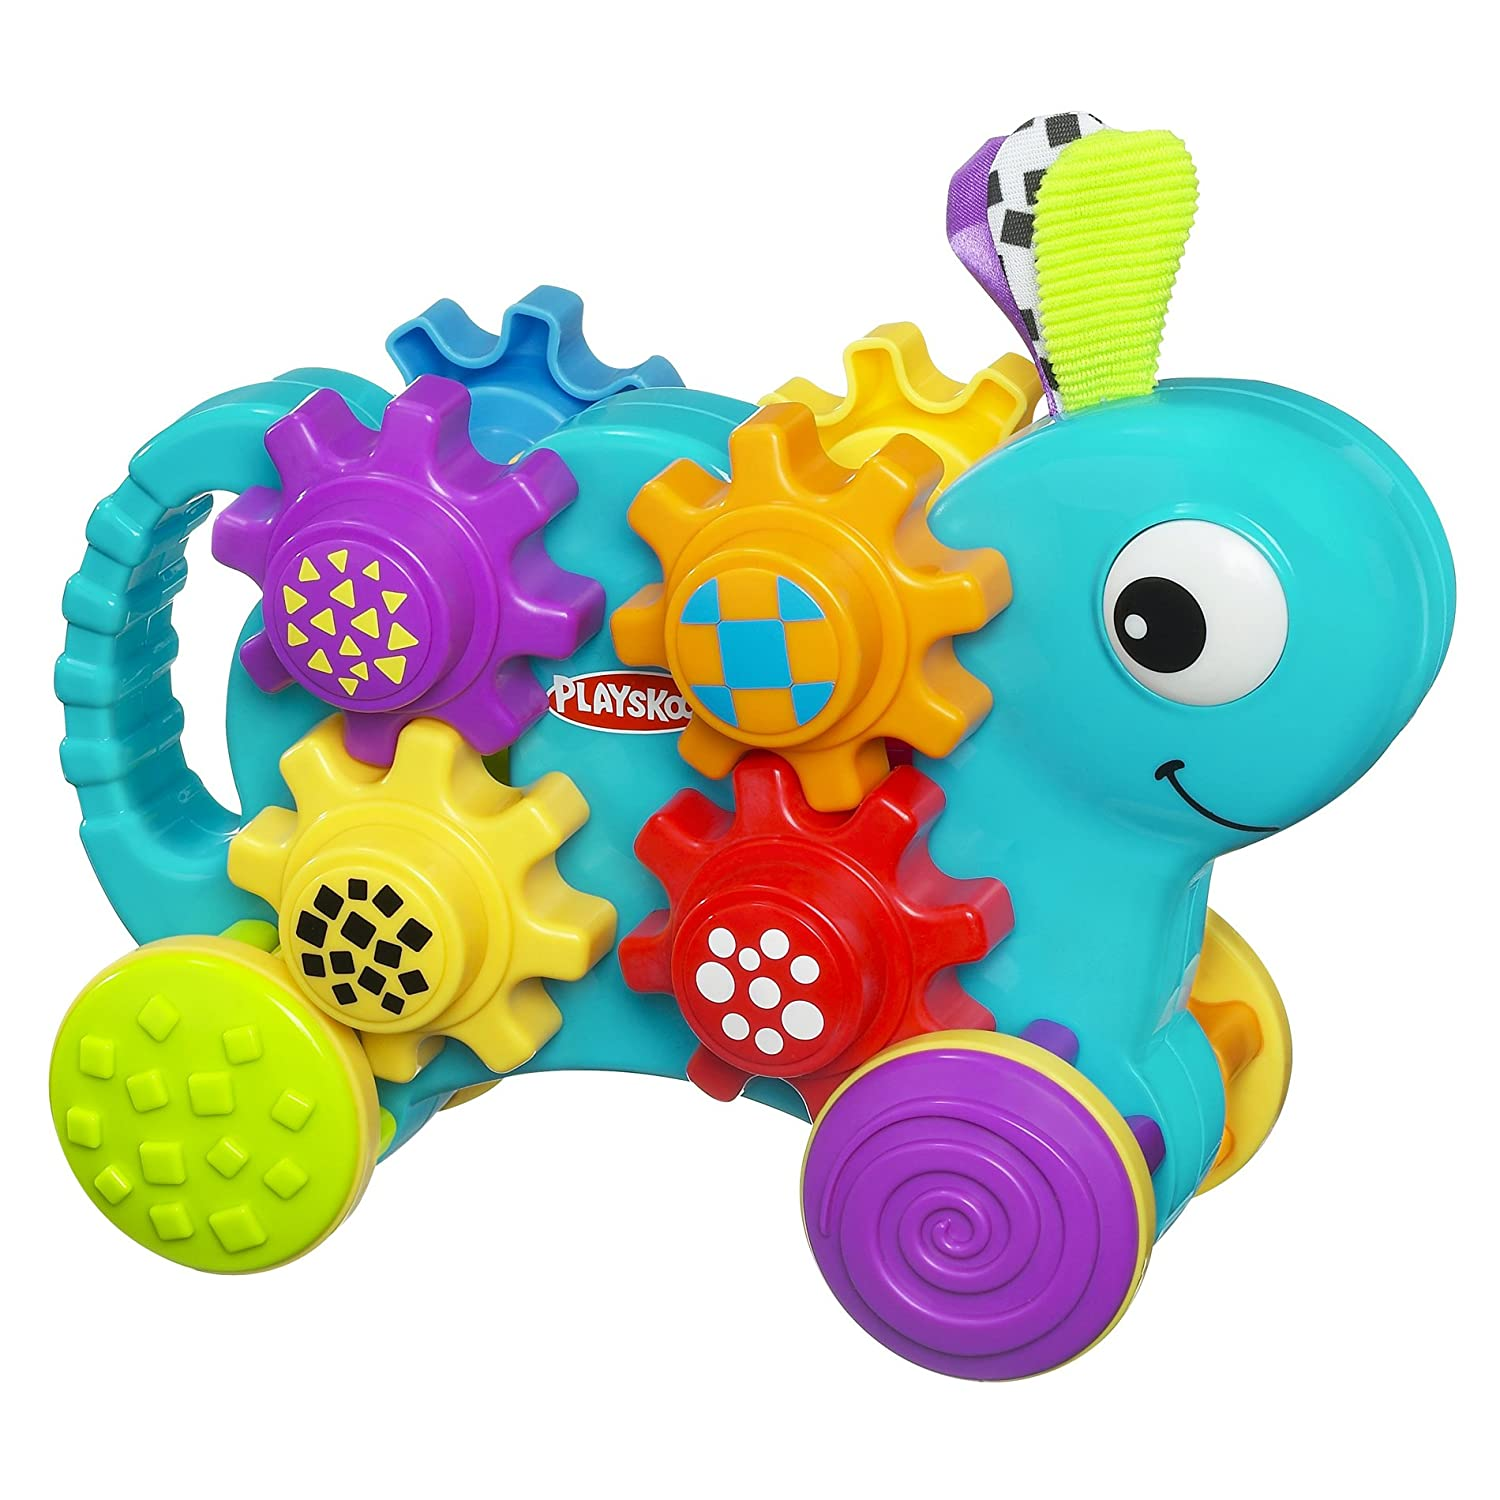 Amazon Playskool Push N Stack Gears Toys & Games